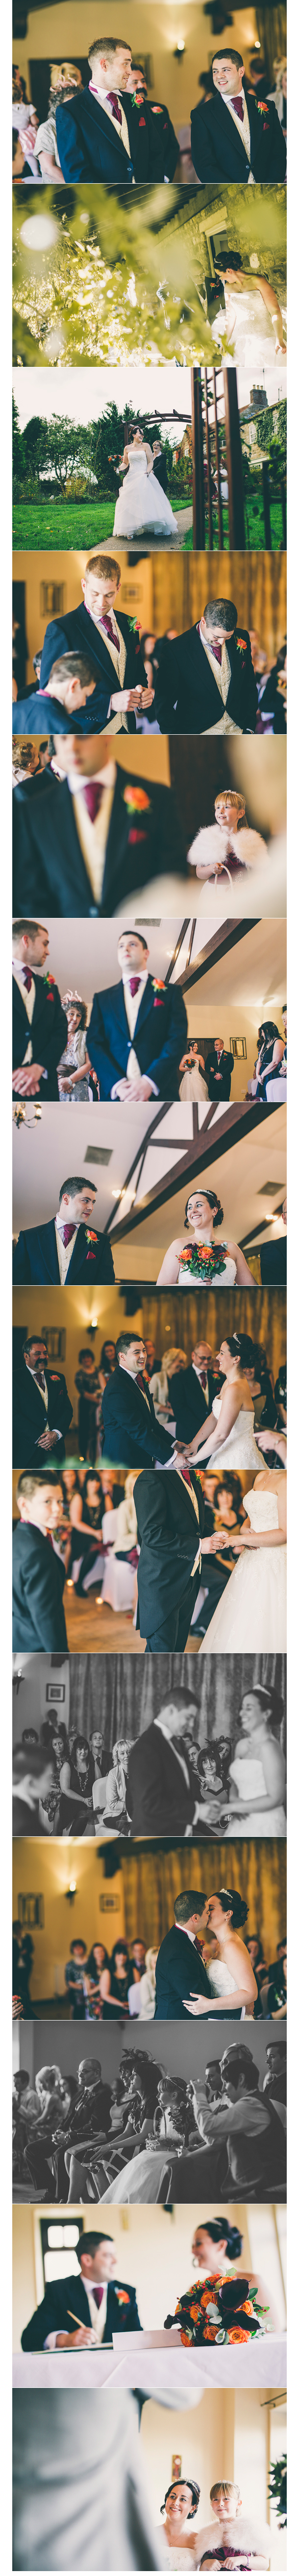 Scarborough_Wedding_Photographer_Ox_Pasture_Hall_Wedding_Photography_Nicola_&_Graham-Blog2